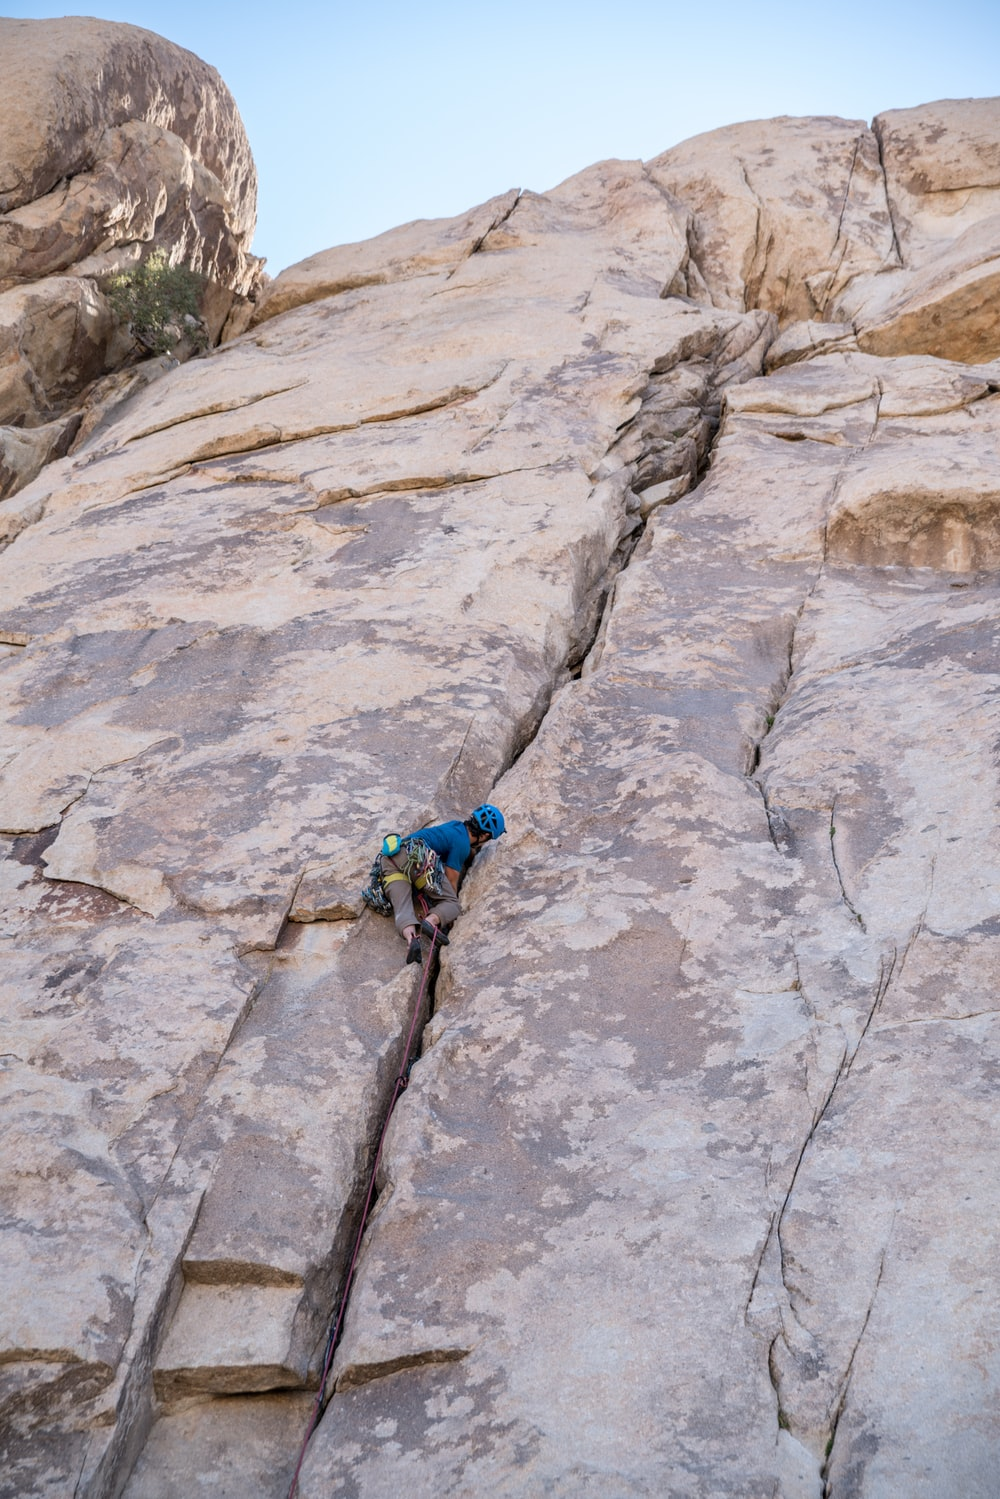 person in blue shirt climbing on brown mountain